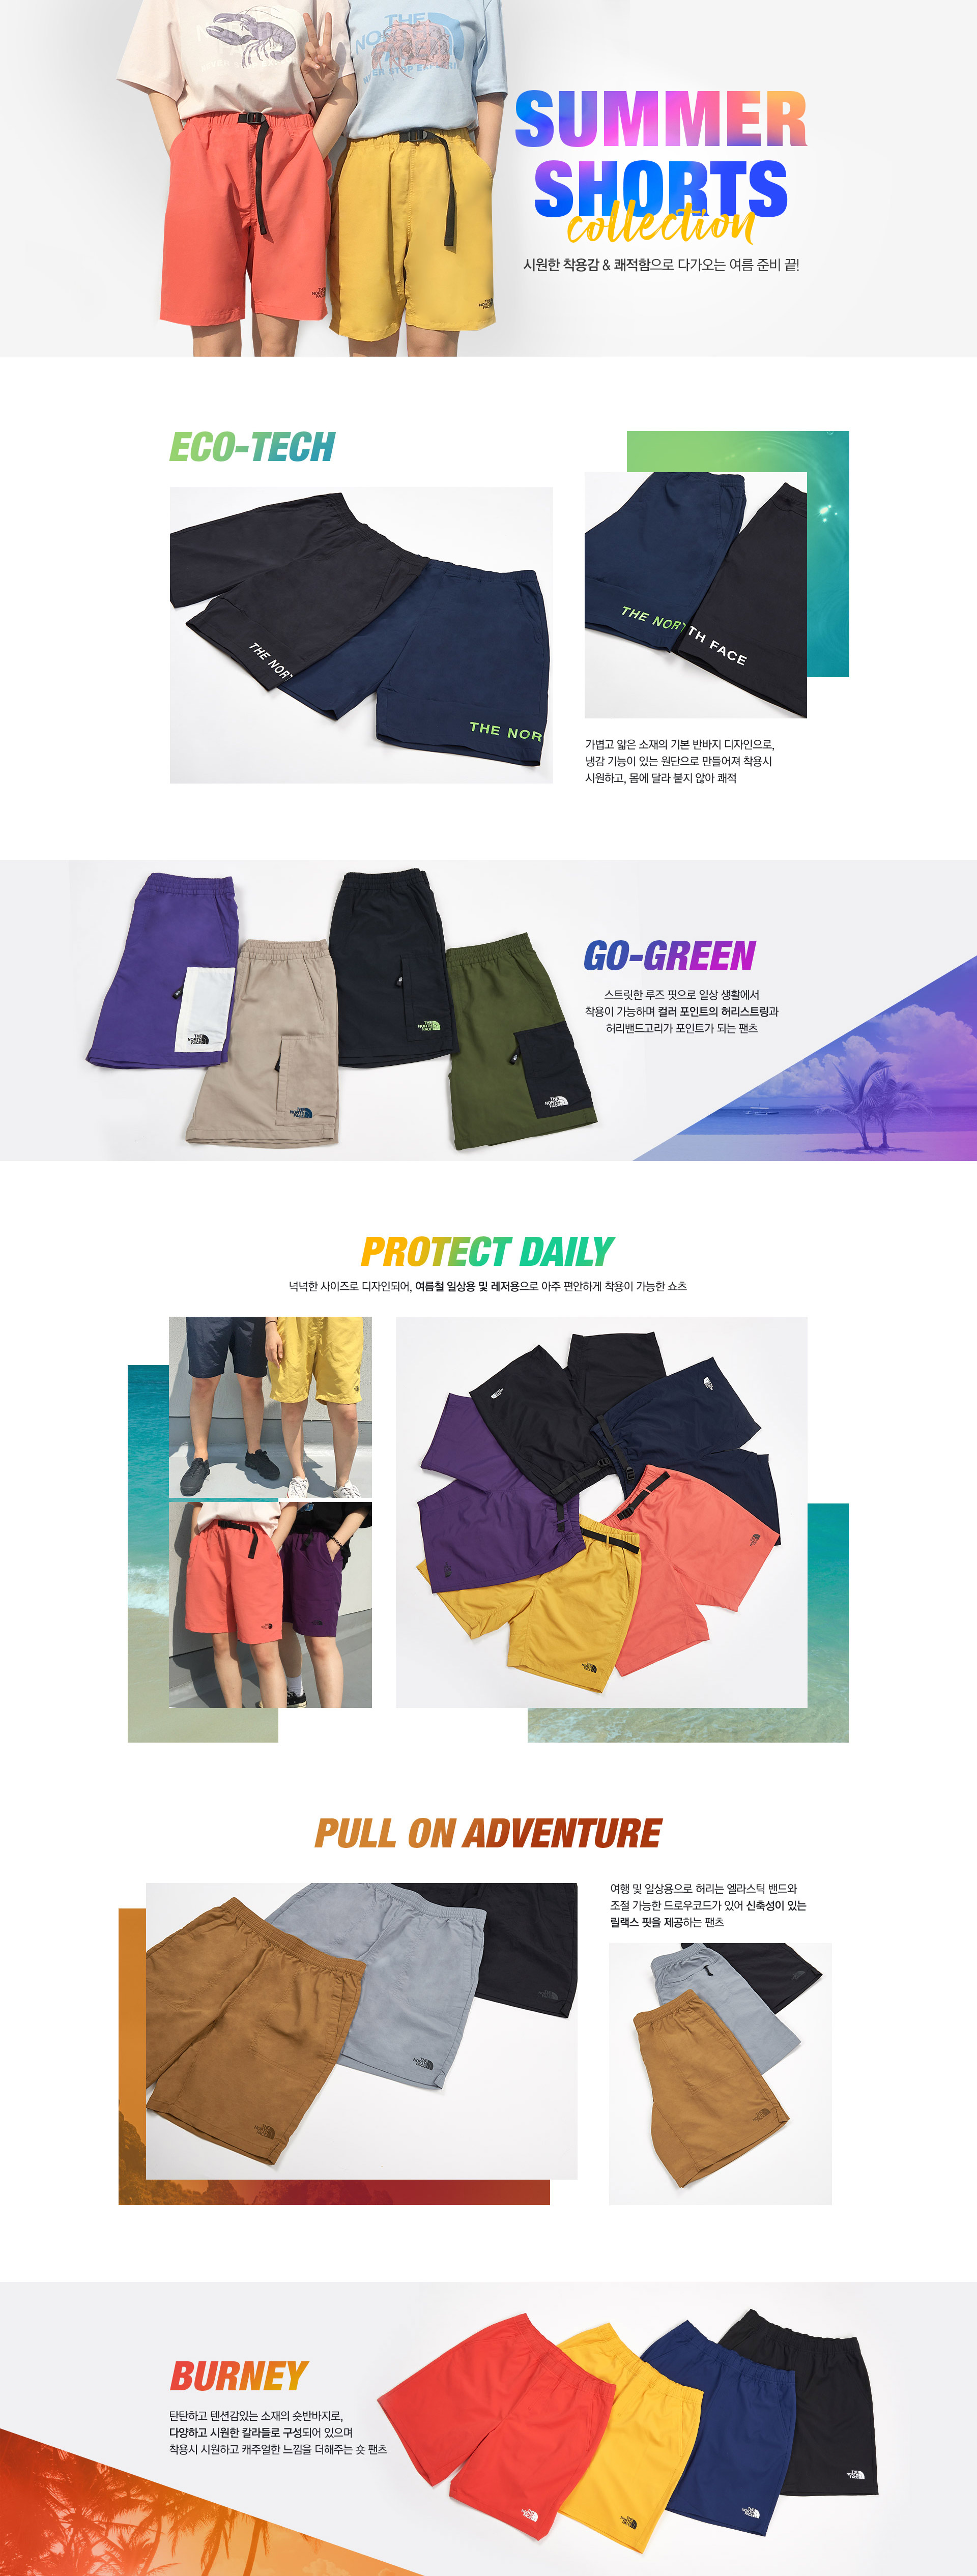 SUMMER SHORTS COLLECTION